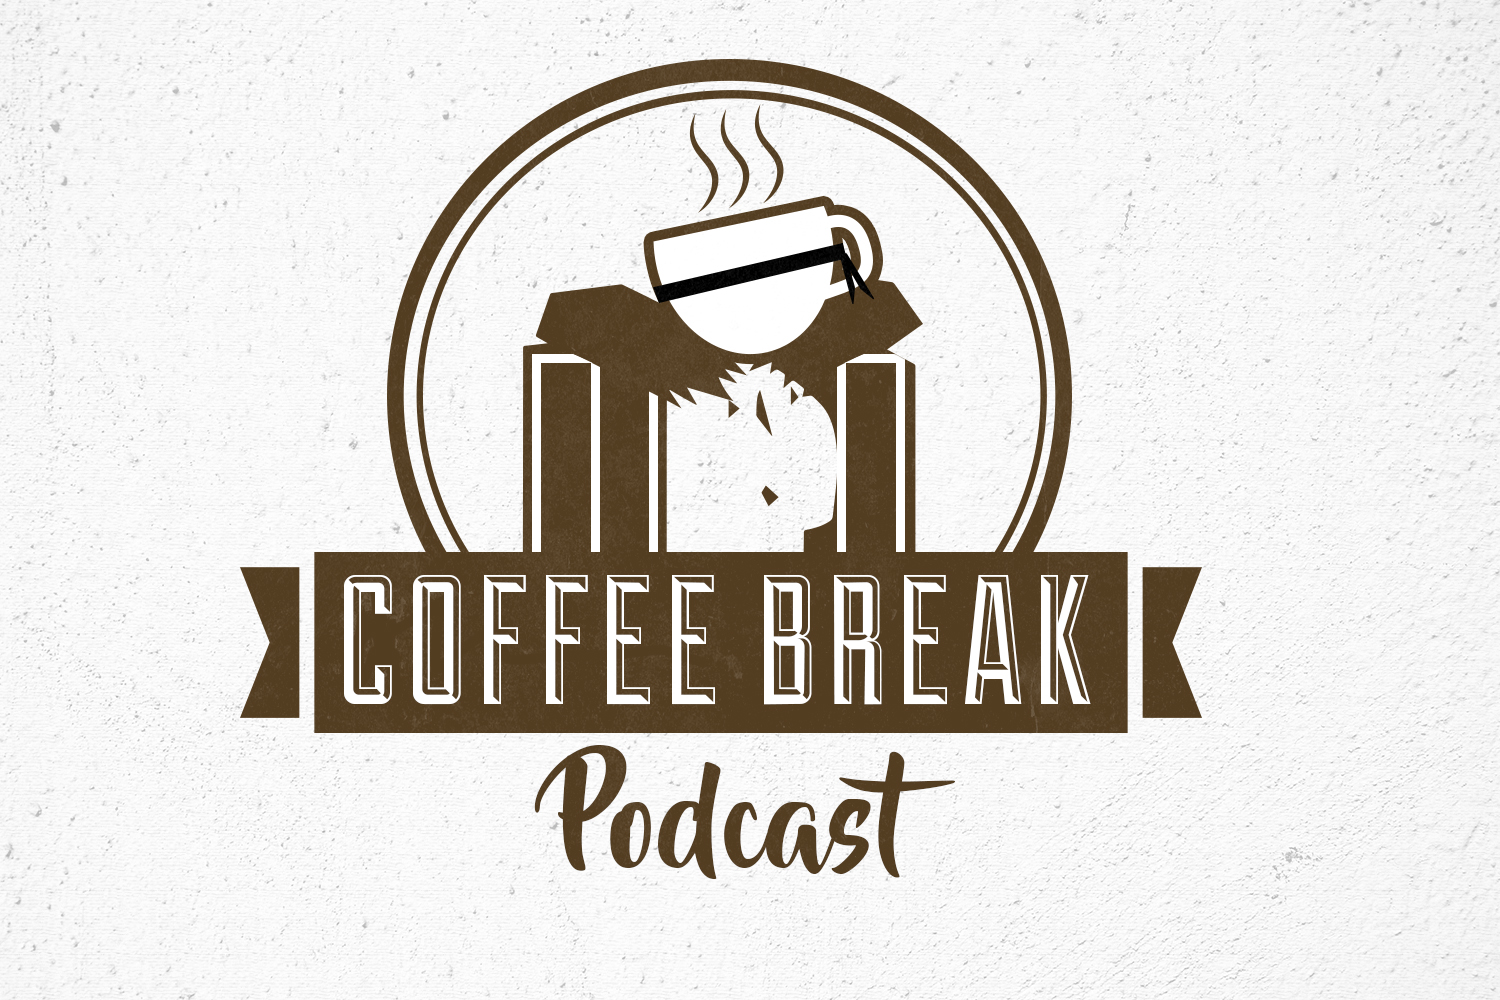 Coffee Break Podcast